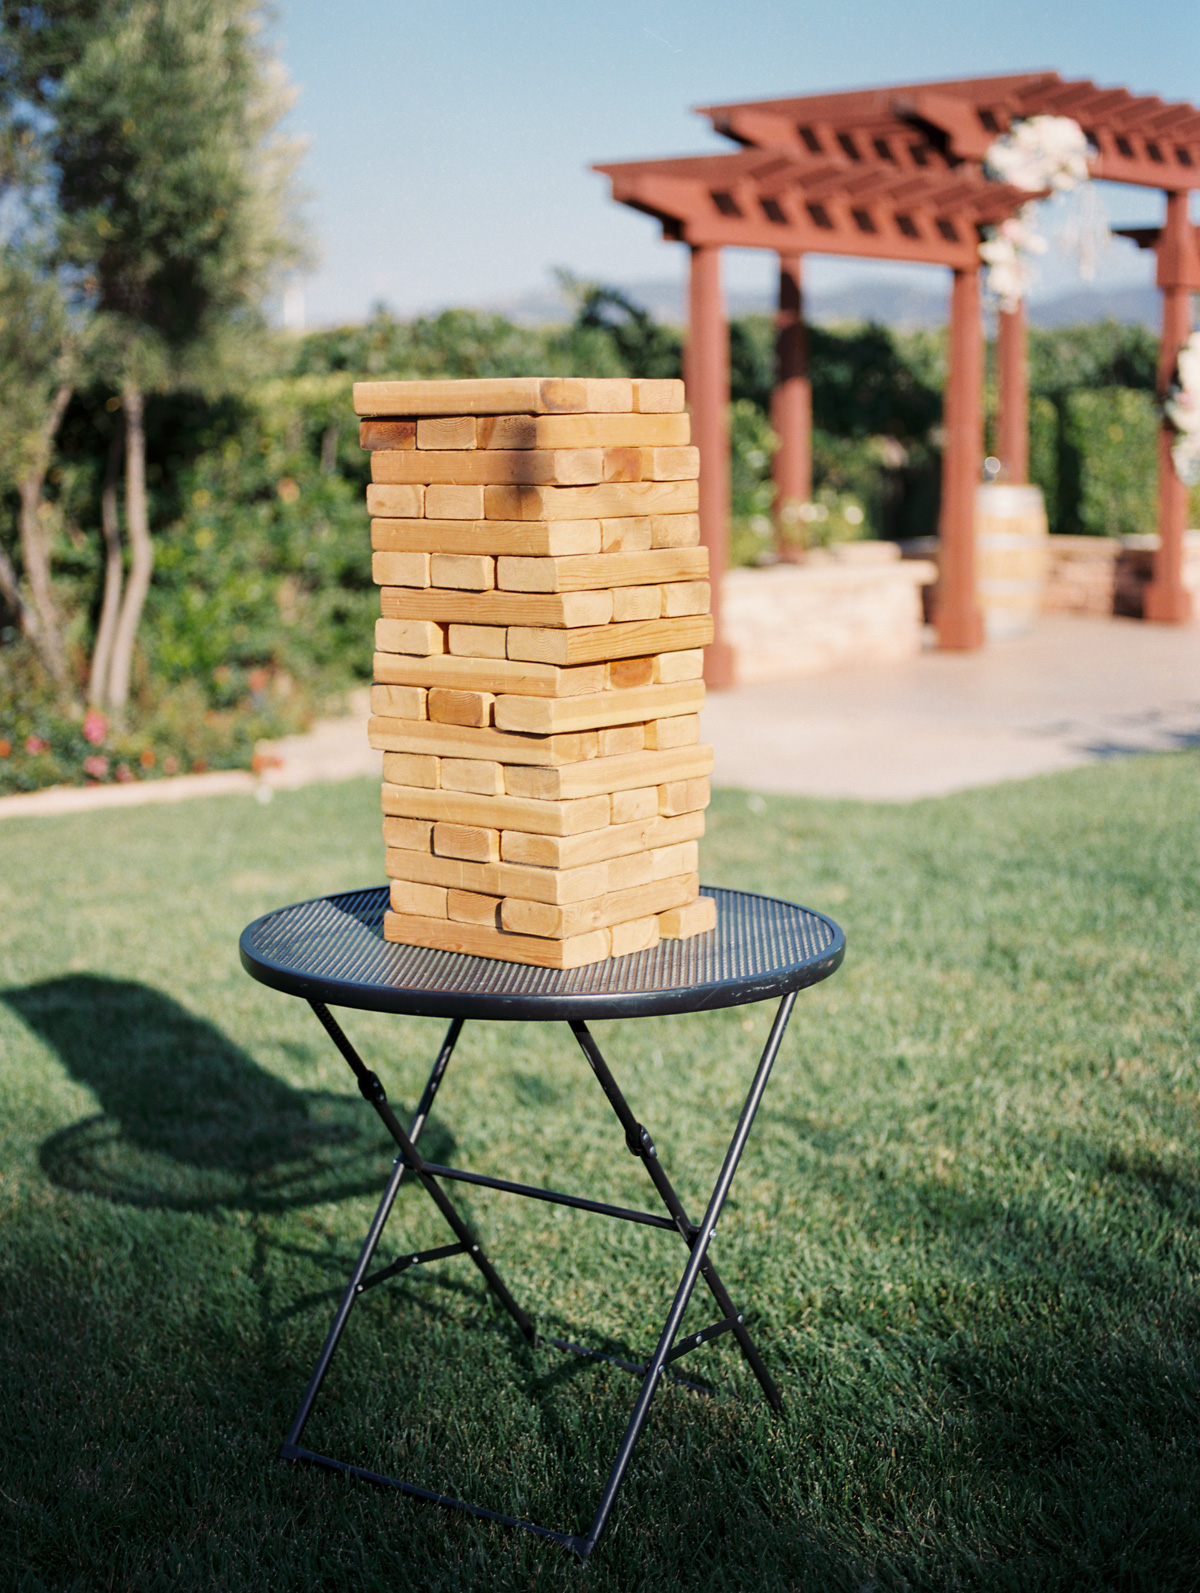 Lawn games during cocktail hour |Harrison & Jocelyne's gorgeous Temecula wedding day at Wiens Family Cellars captured by Temecula wedding photographers Betsy & John